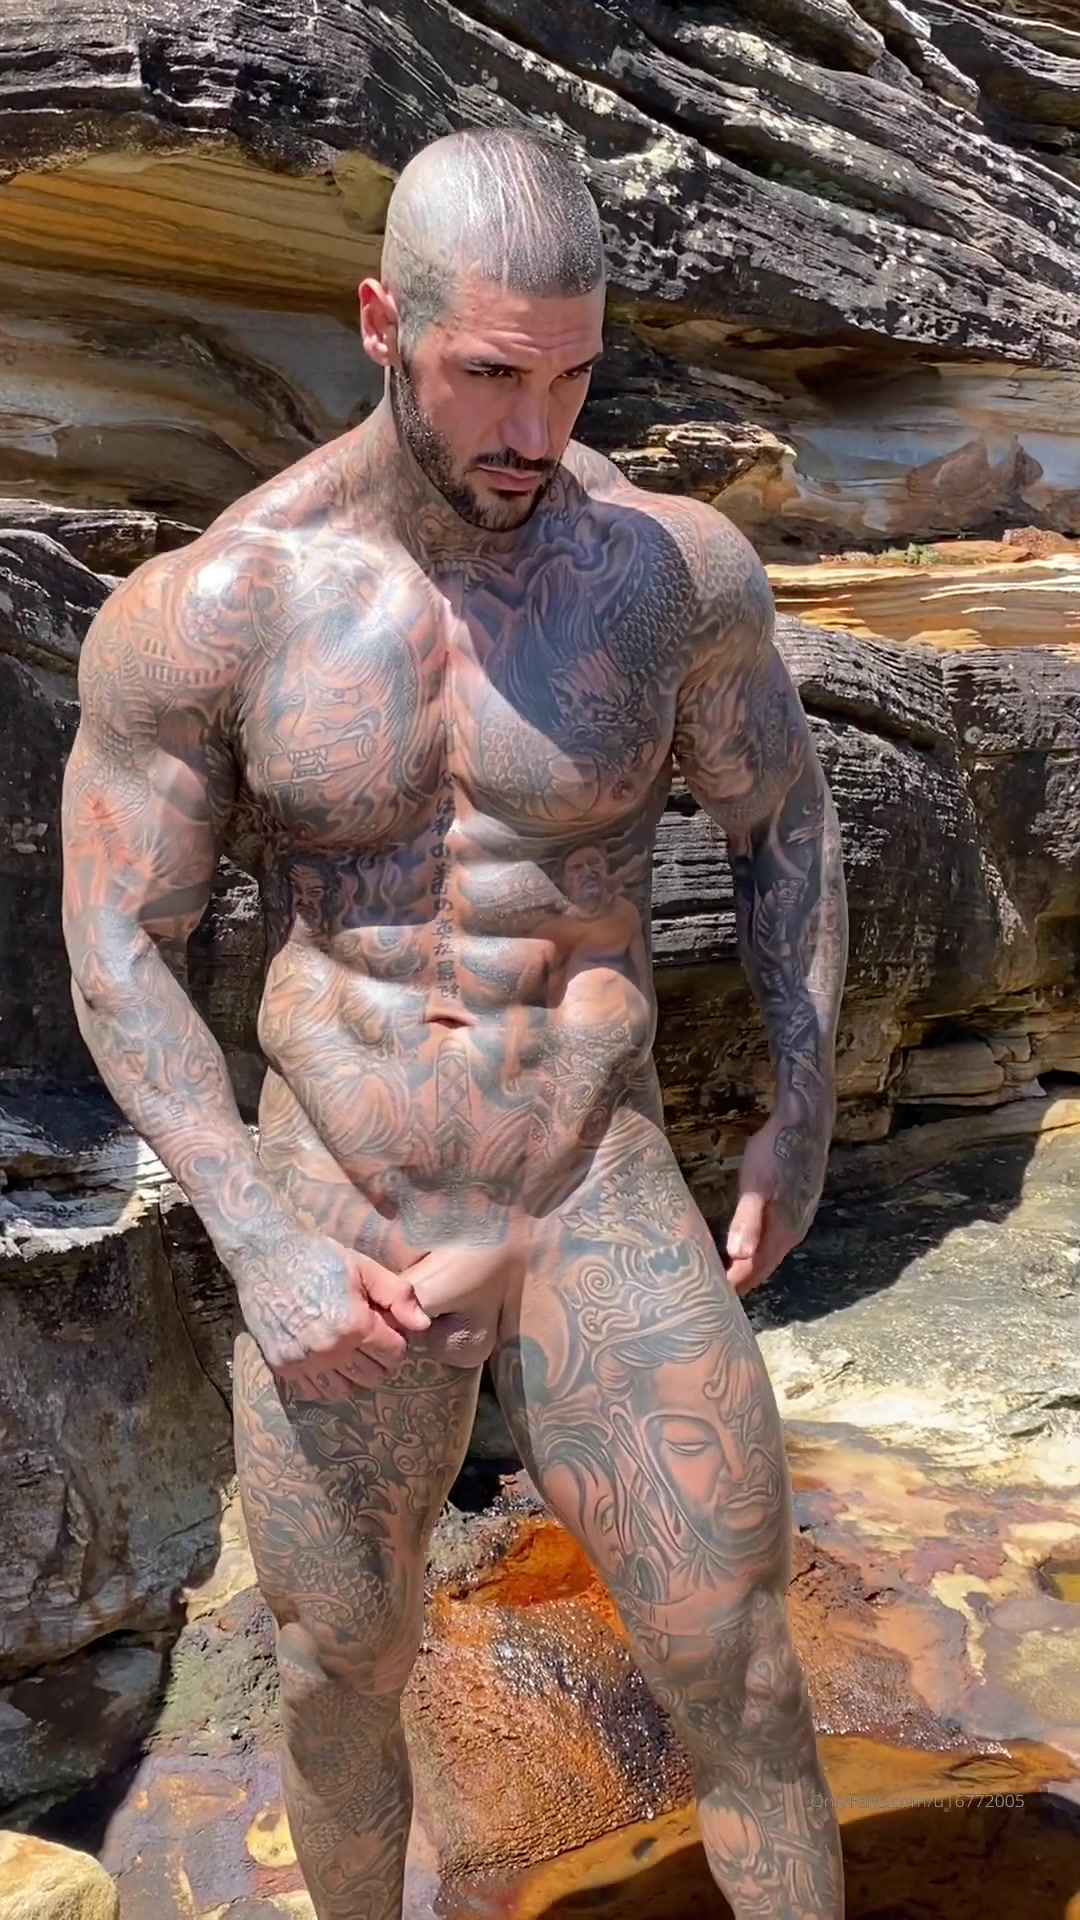 Hot Muslim guy covered in tattoos showing off his body and cock at the beach